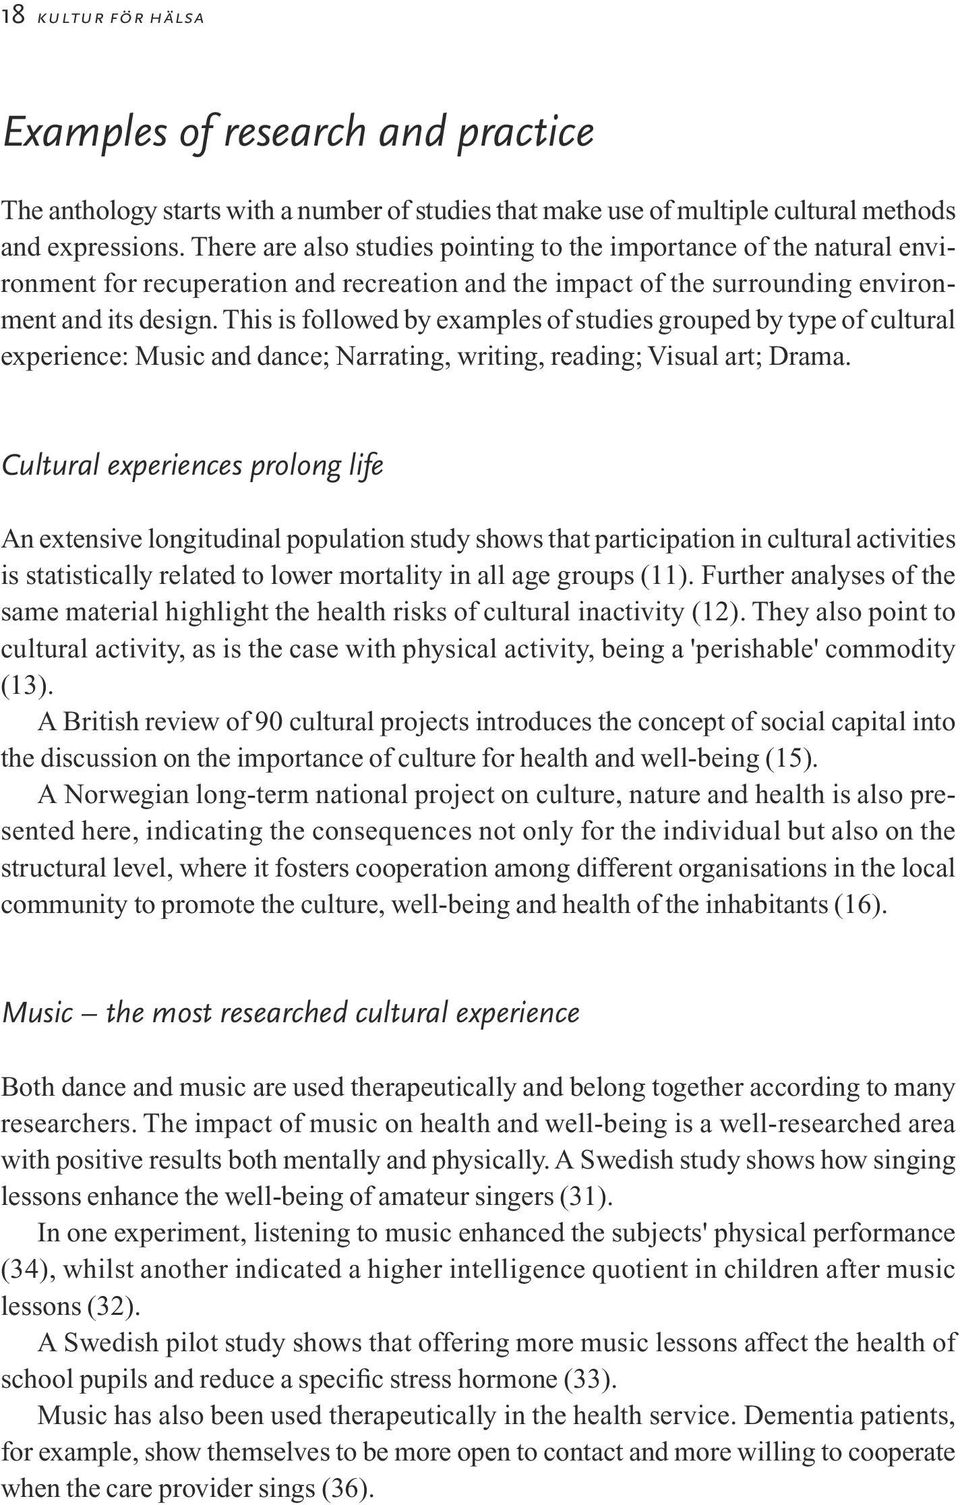 This is followed by examples of studies grouped by type of cultural experience: Music and dance; Narrating, writing, reading; Visual art; Drama.